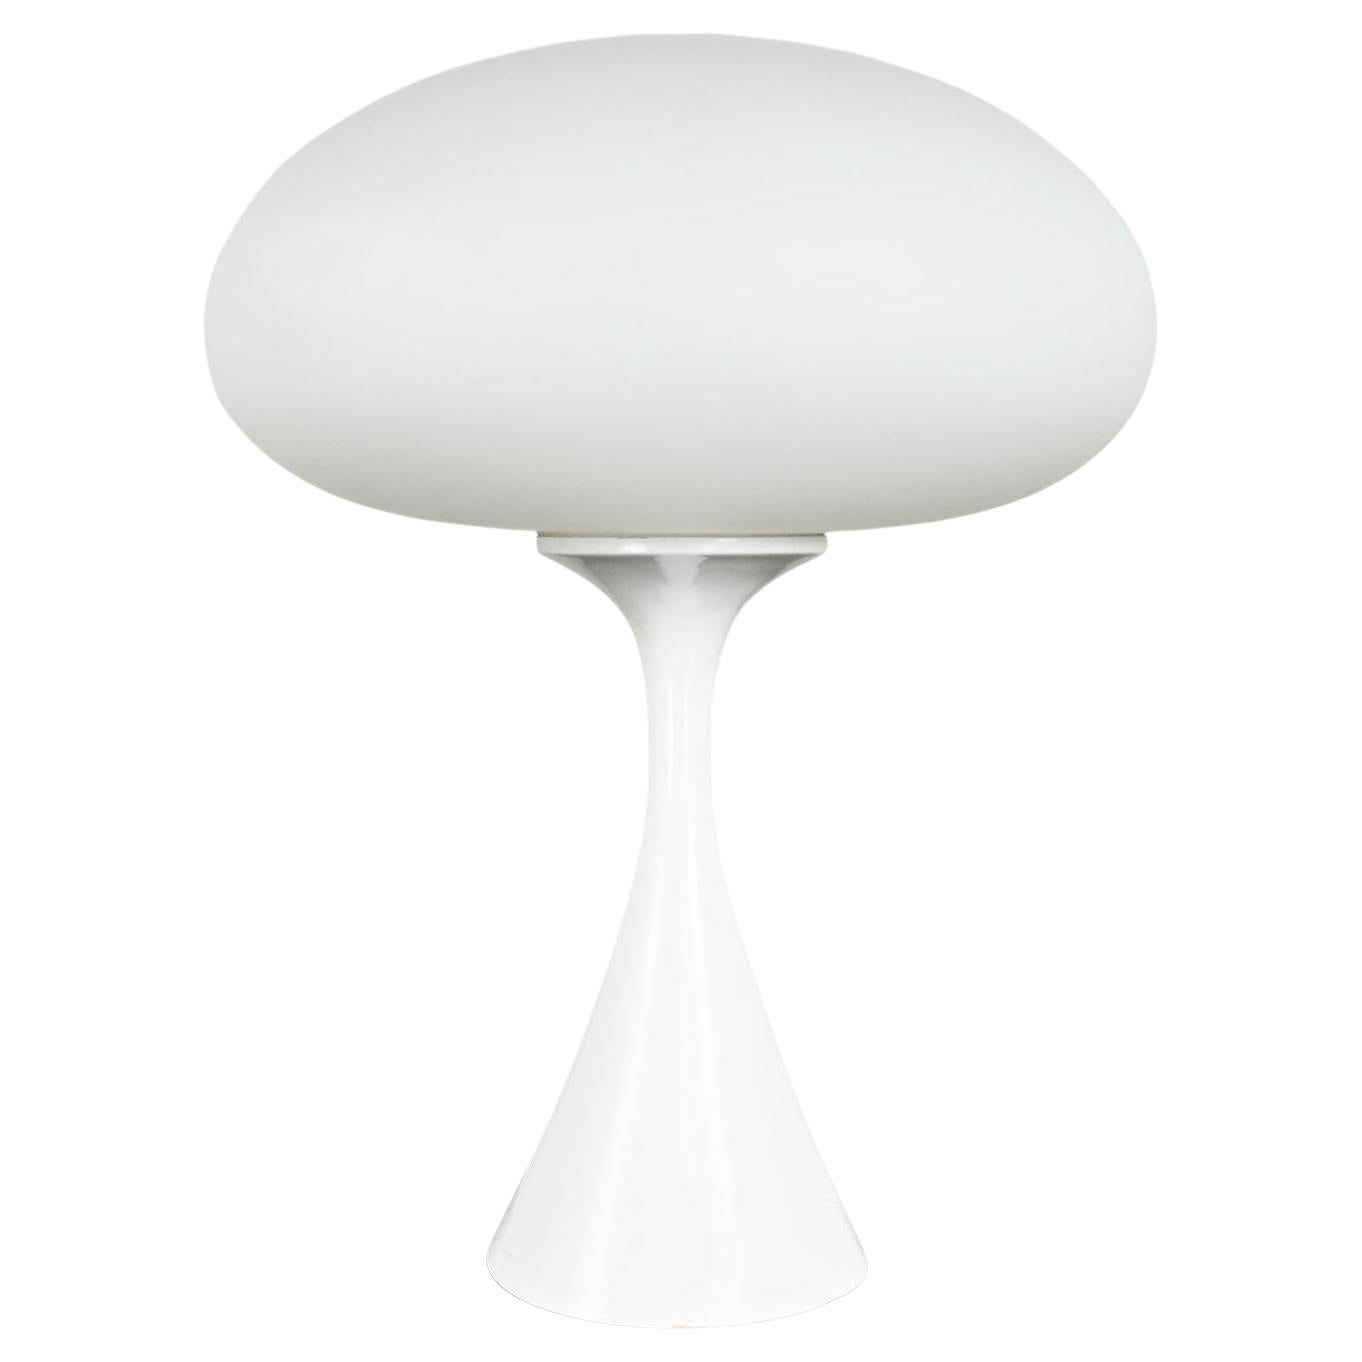 Vintage MCM Table Lamp with Frosted White Glass Mushroom Shade by Laurel Lamp Co